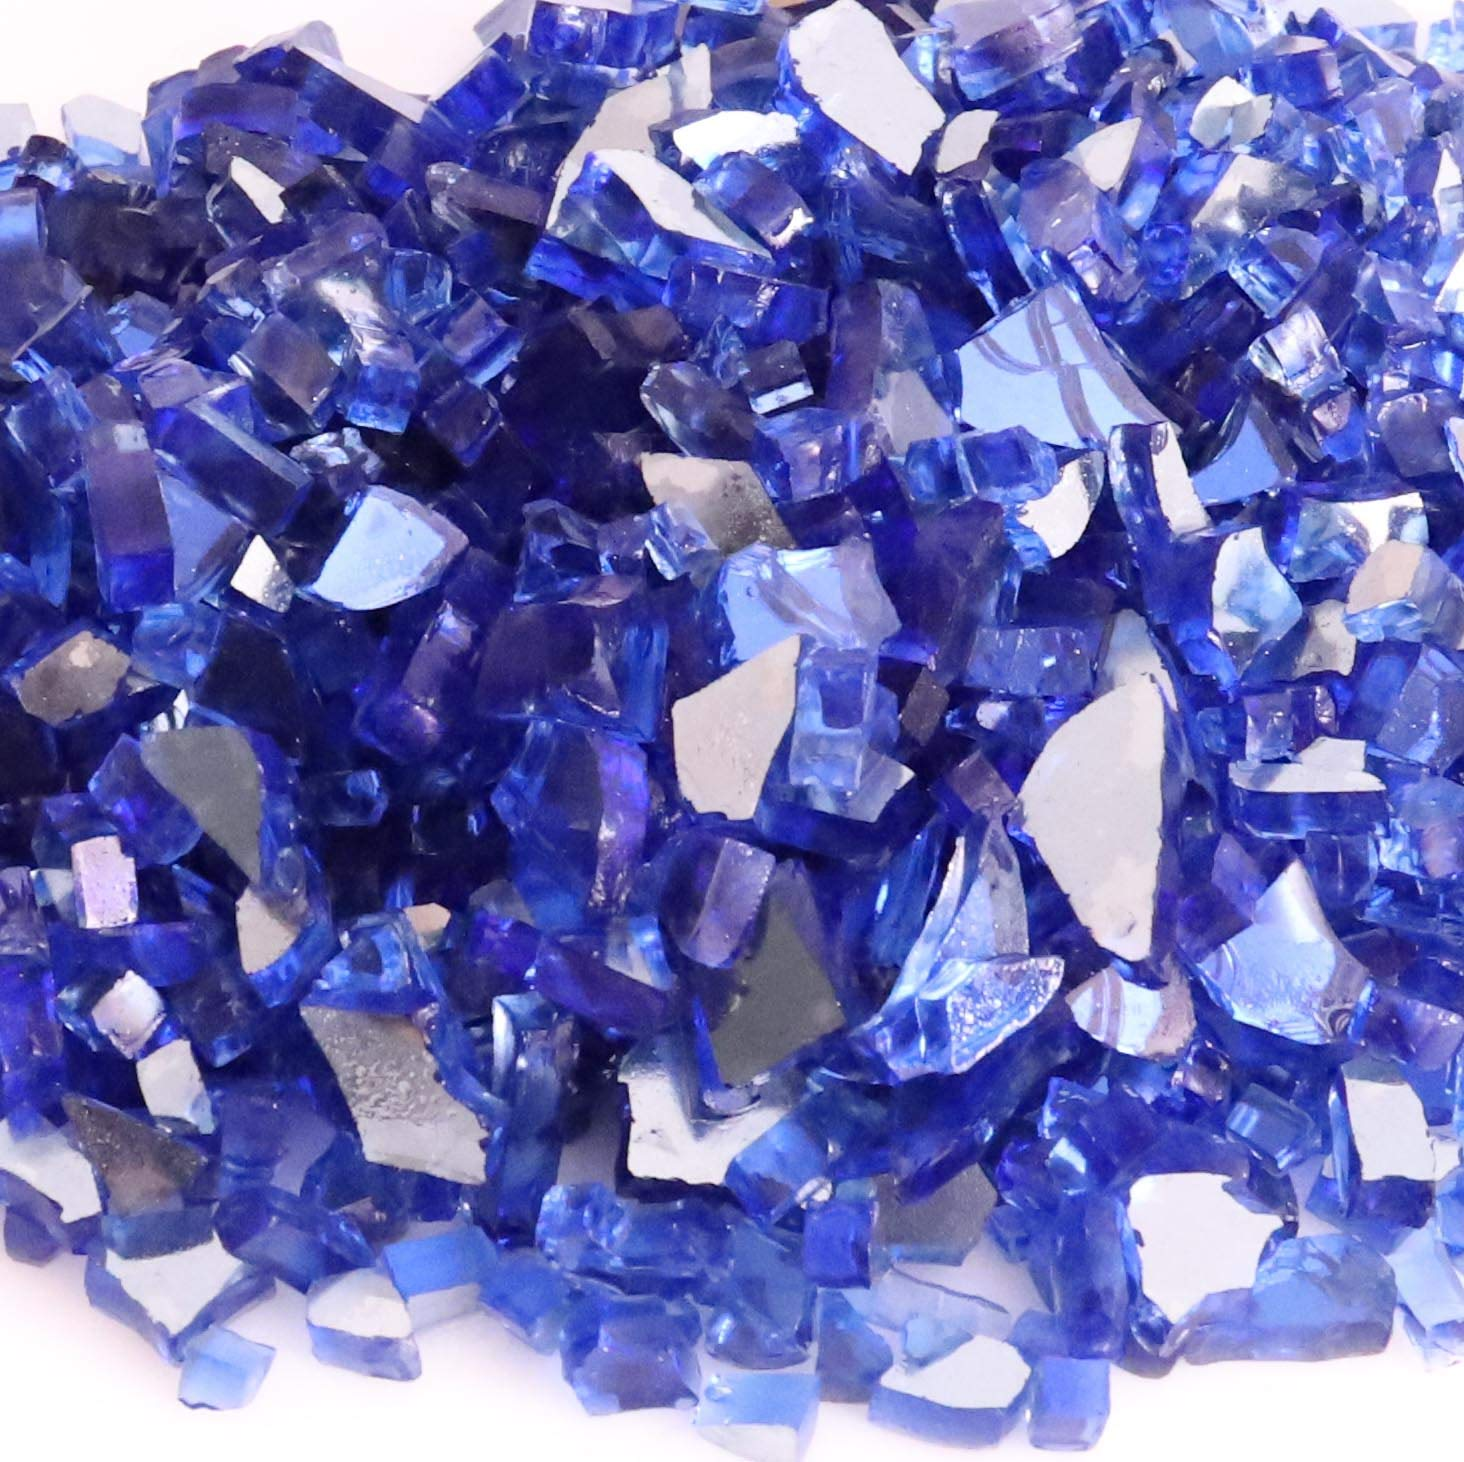 KIBOW 10-Pound Pack Crushed Fire Glass for Gas Fire Pit/Fire Table, (About 1/4 to 1 Inch)-Cobalt Blue